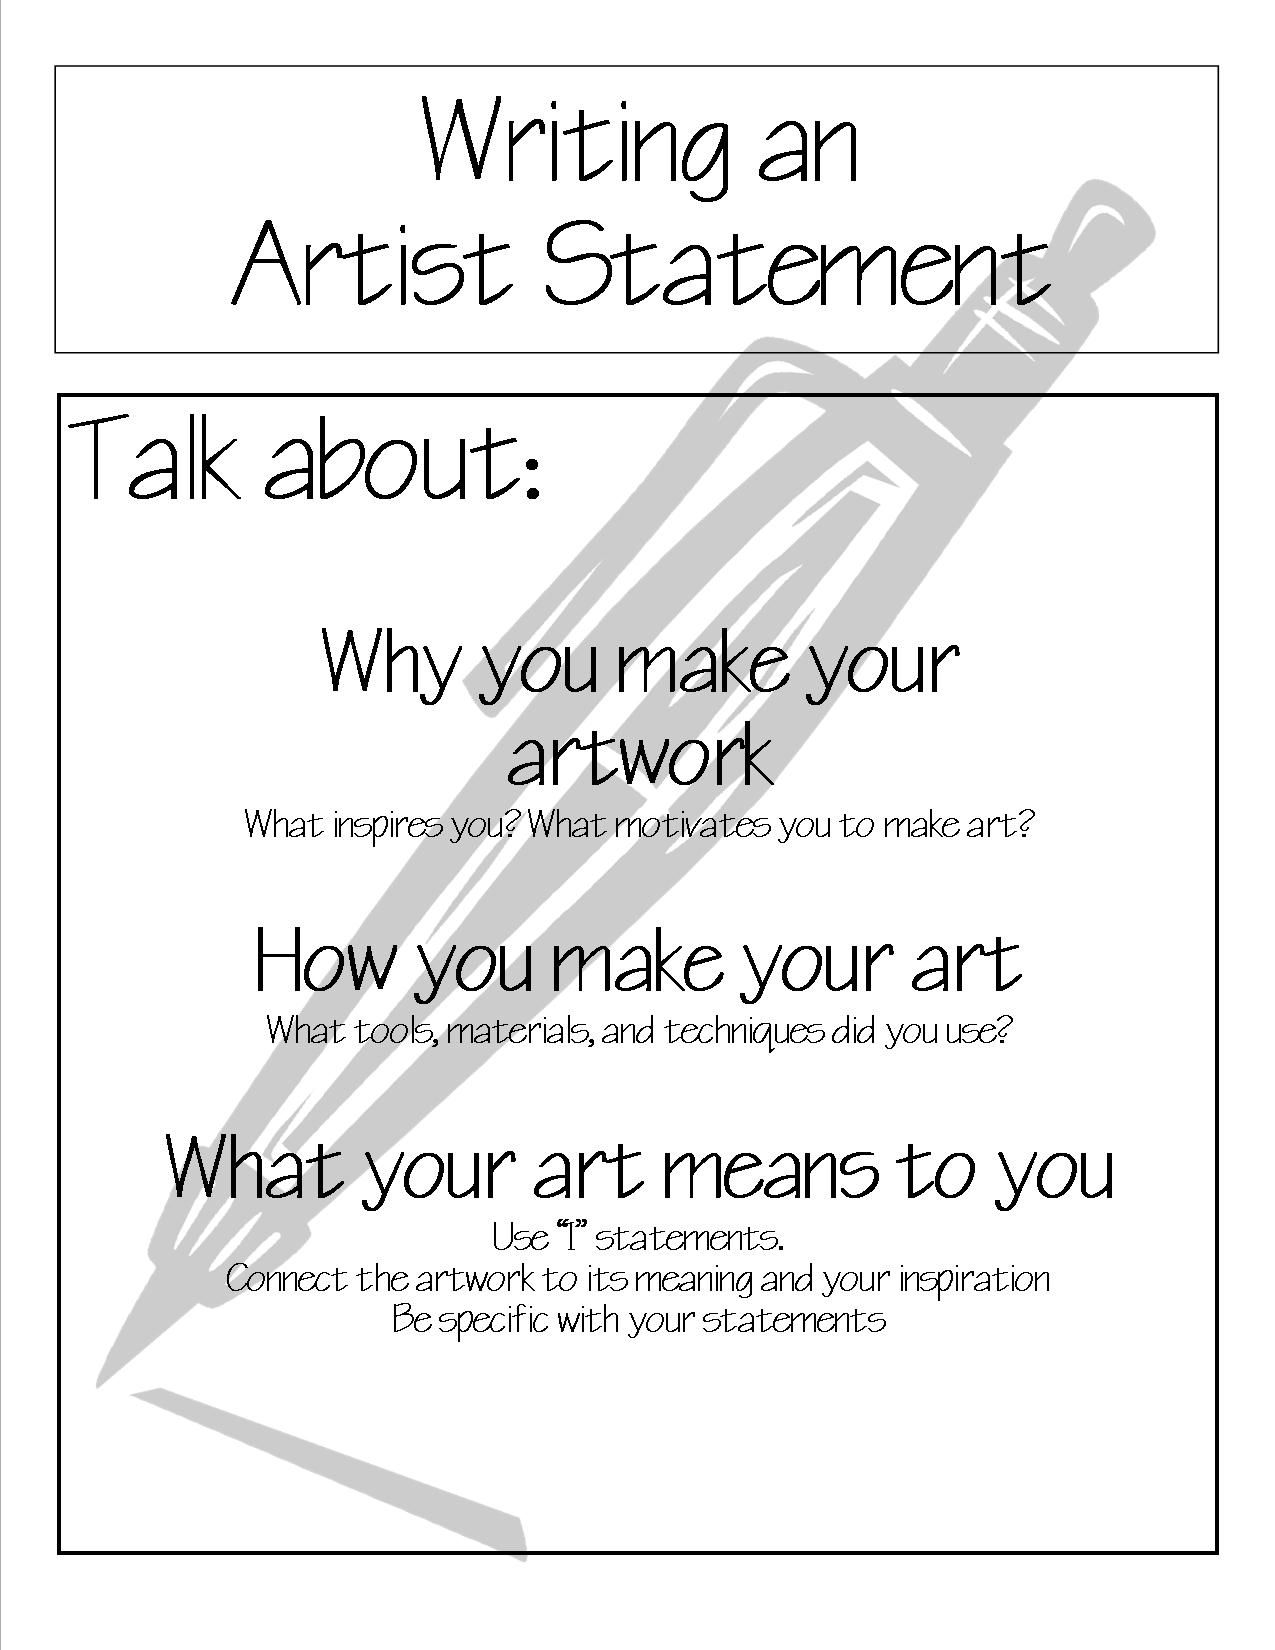 Writing an artist statement? First ask yourself these four questions